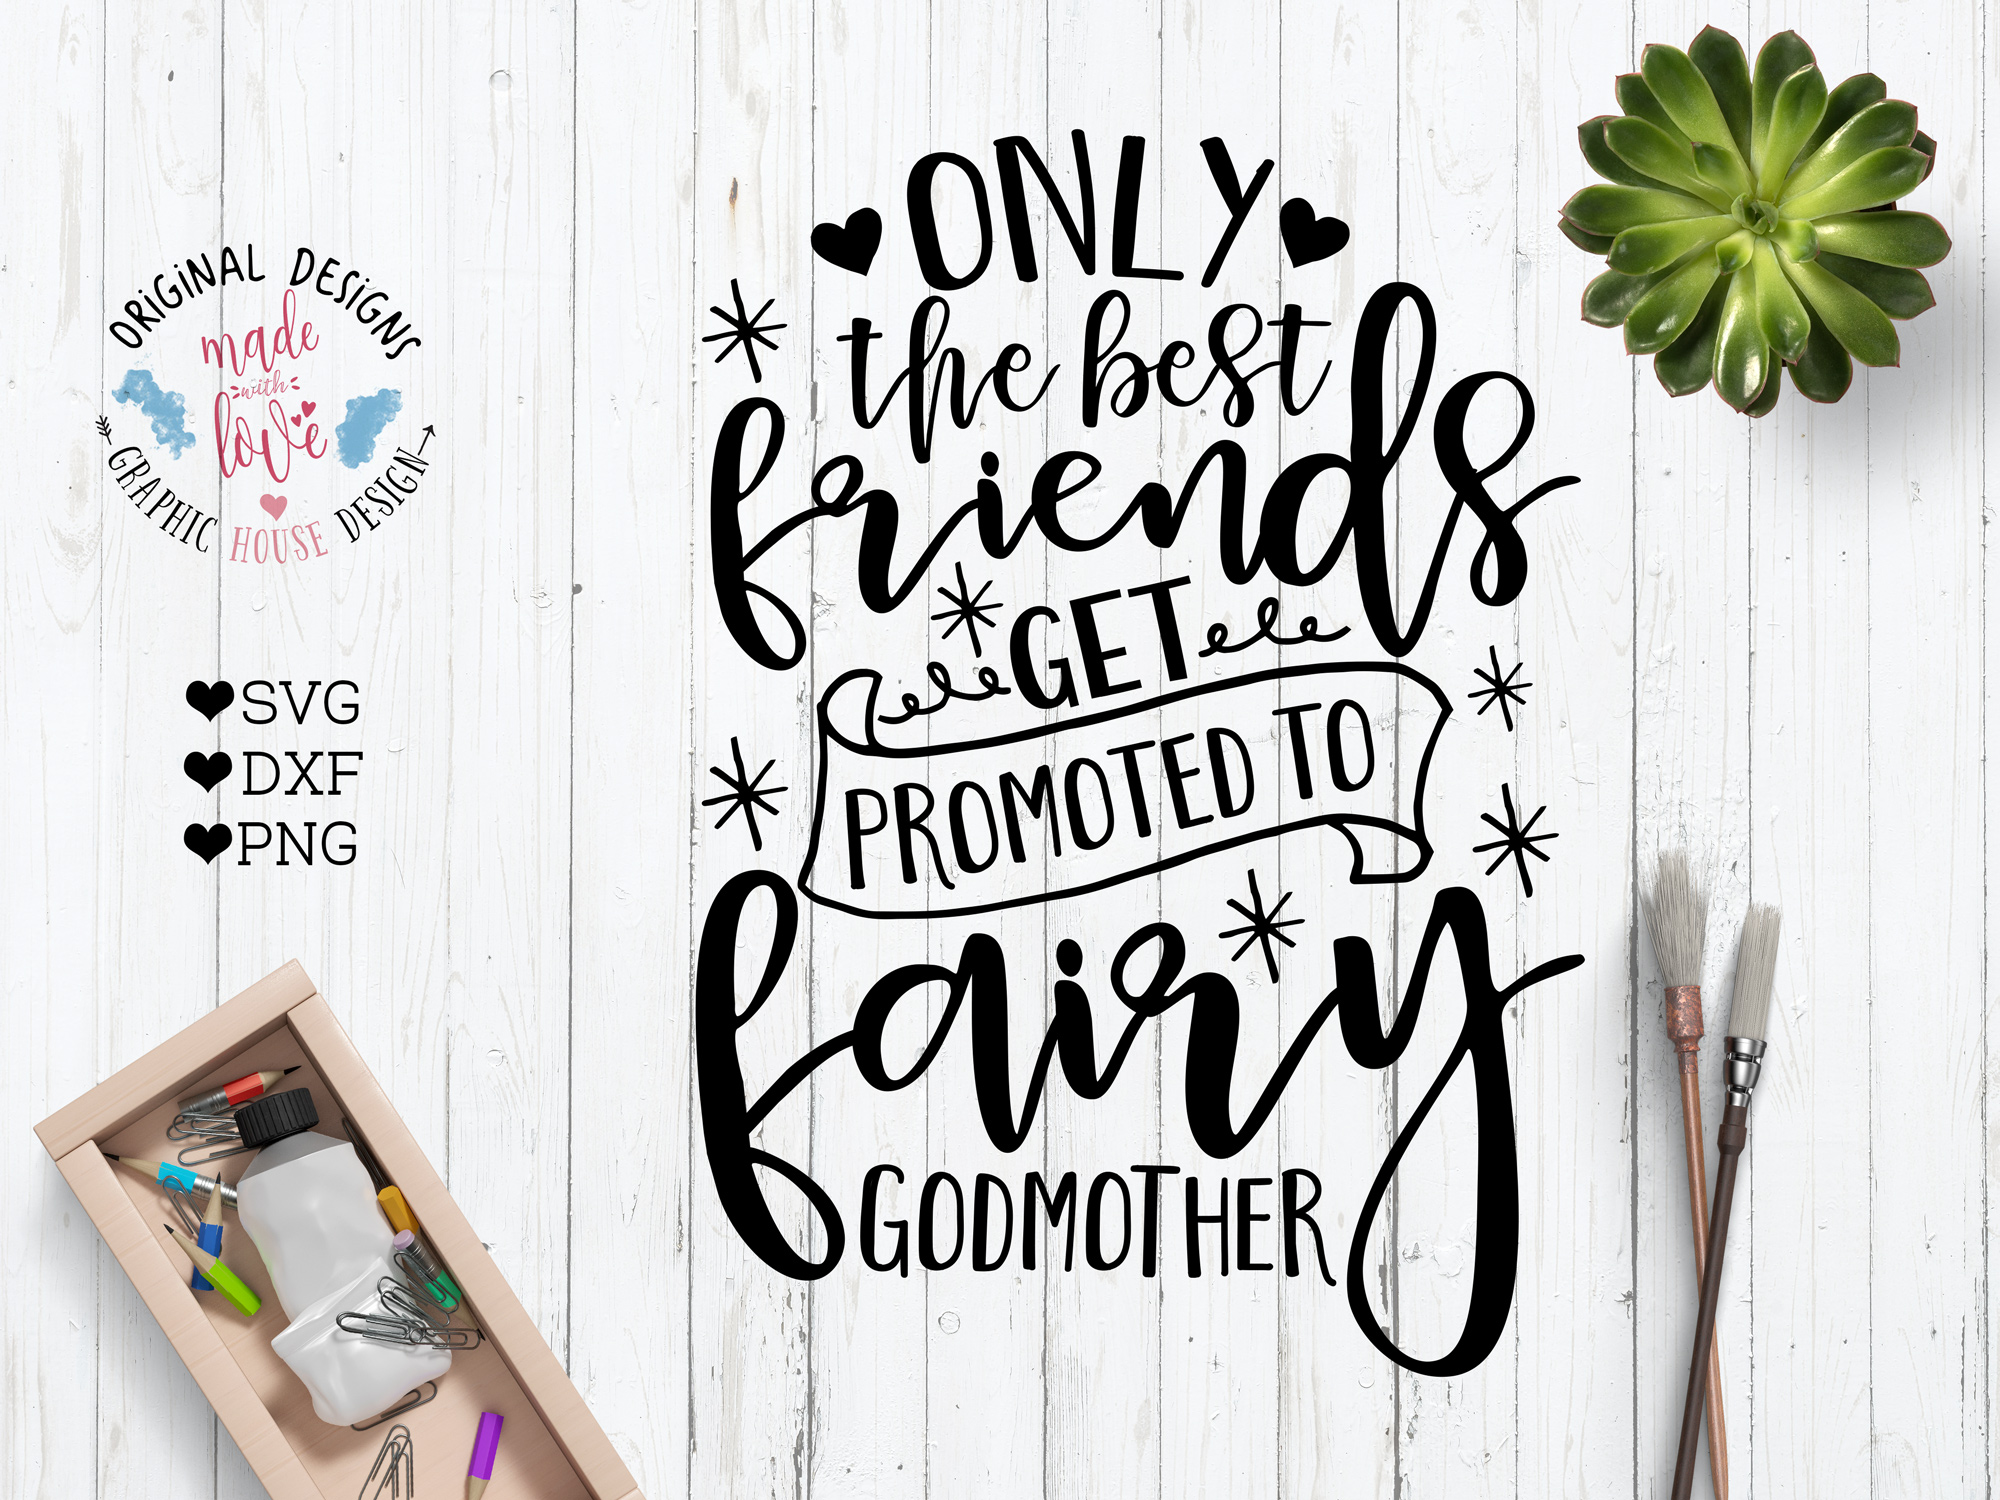 Godmother Quotes For Scrapbooking Quotesgram: Only The Best Friends Get Promoted Fairy GodMother Cut